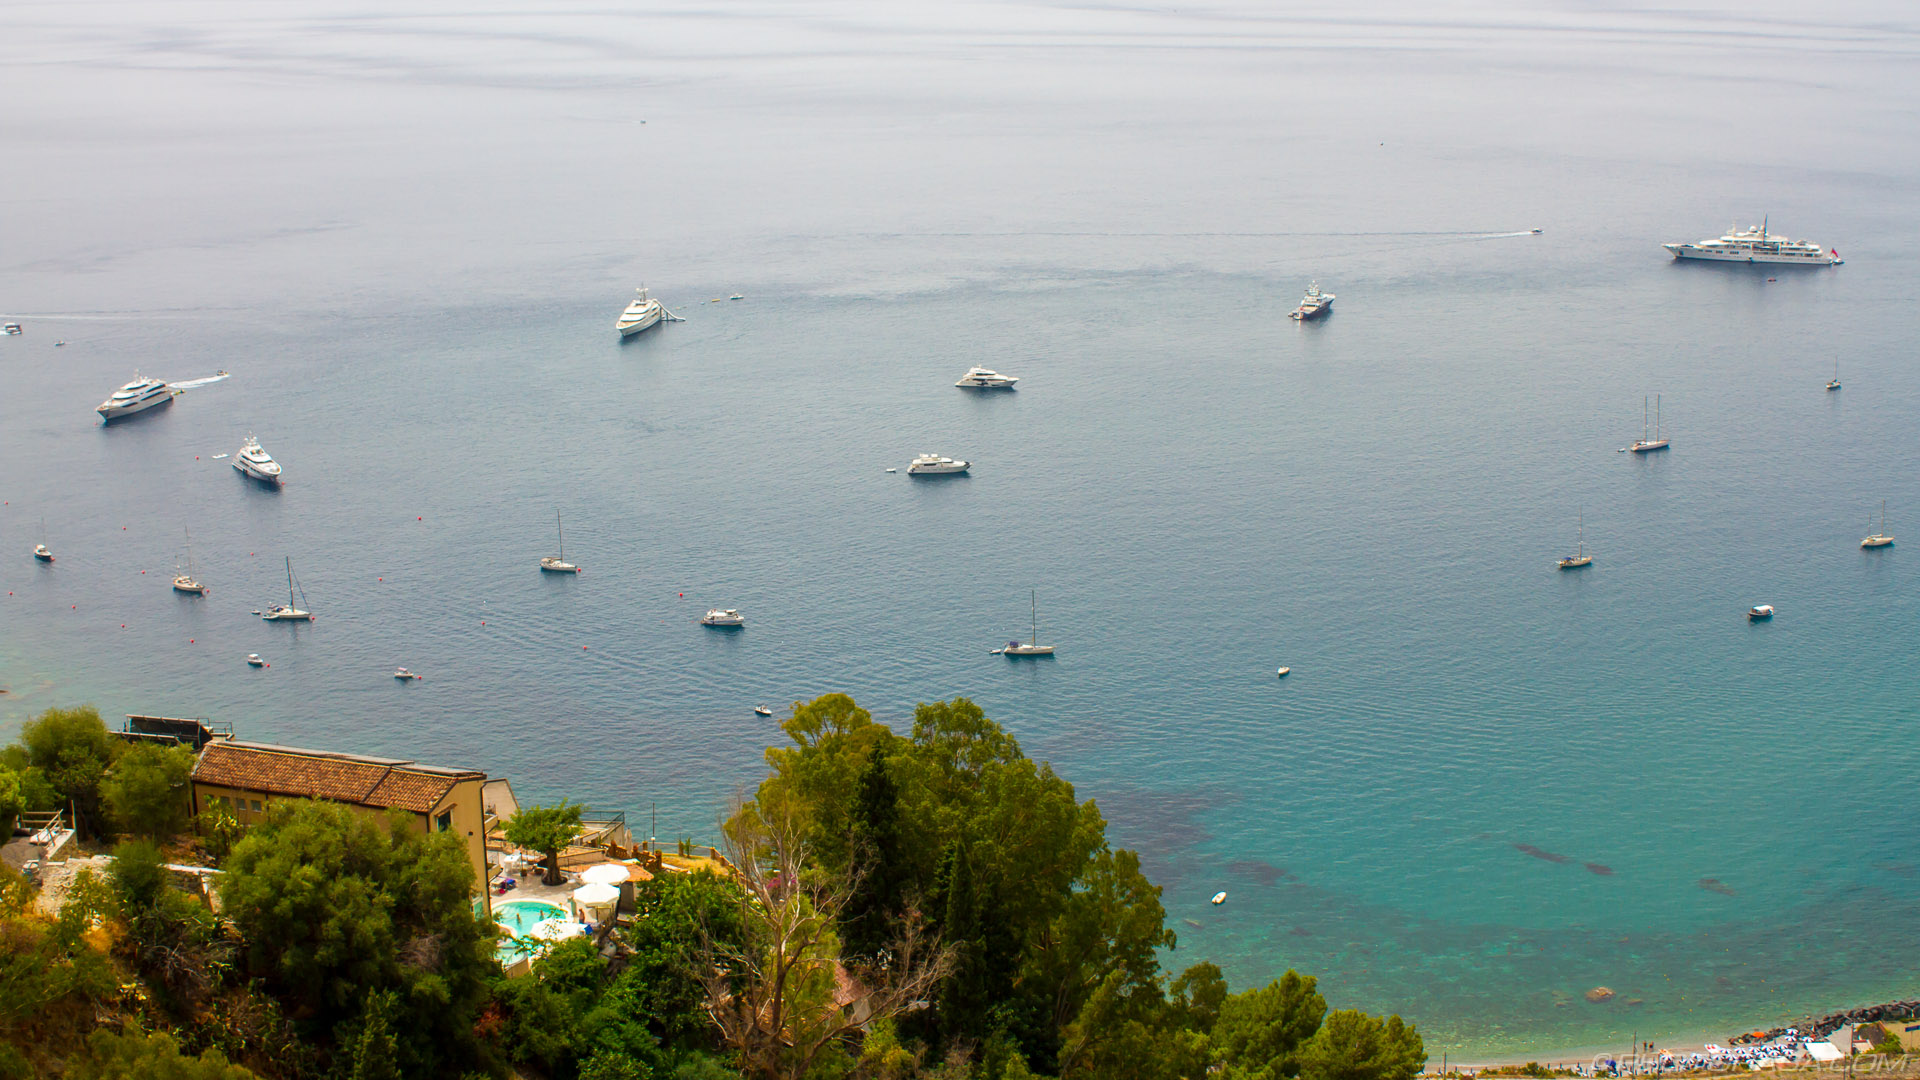 https://photorasa.com/taormina/boats-in-the-harbour/